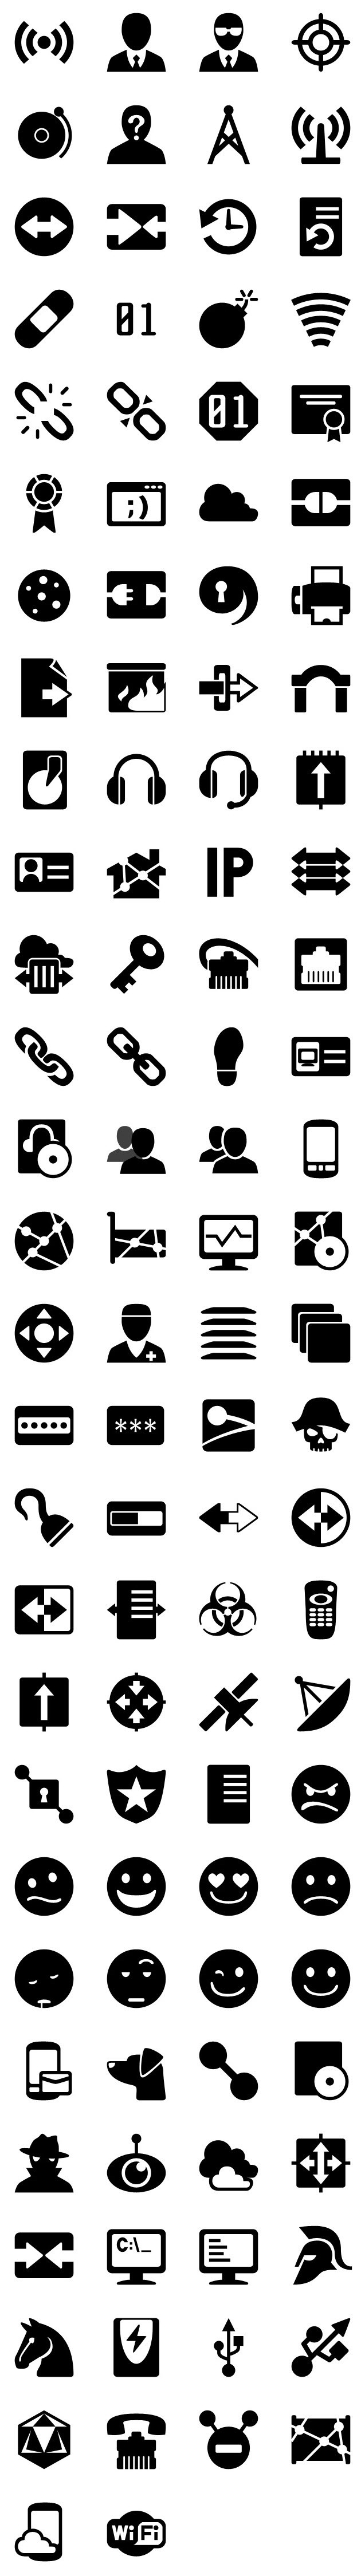 iphone icons networking 114px